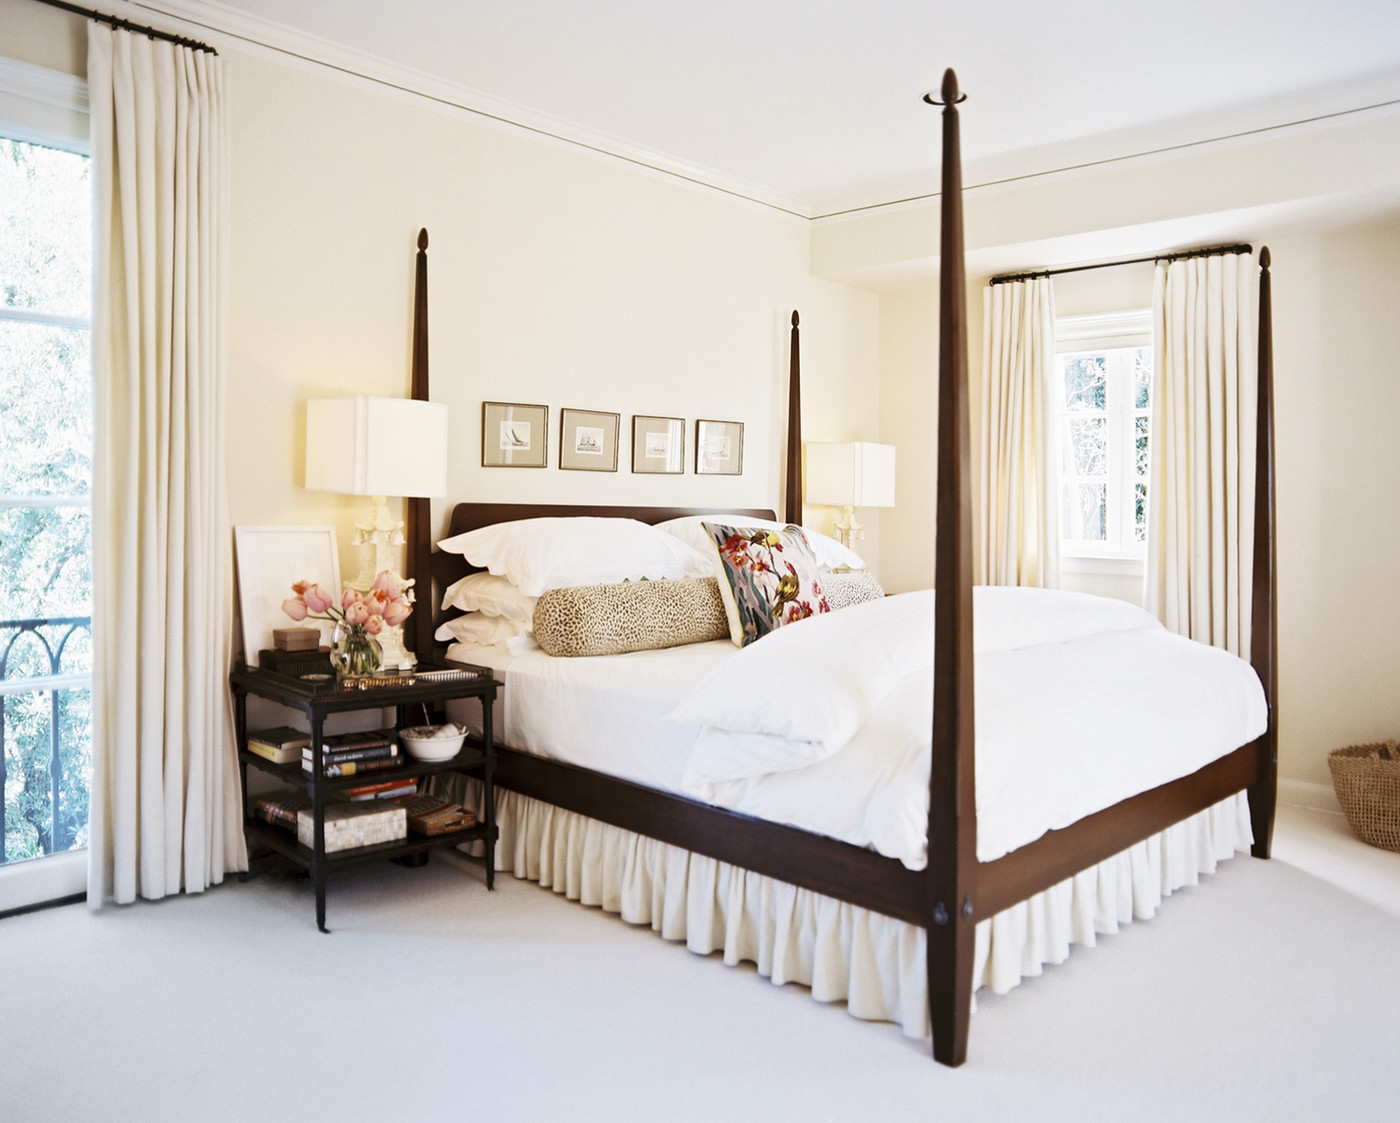 Cool Bedroom Ideas Photos Design Ideas Remodel And Decor Lonny